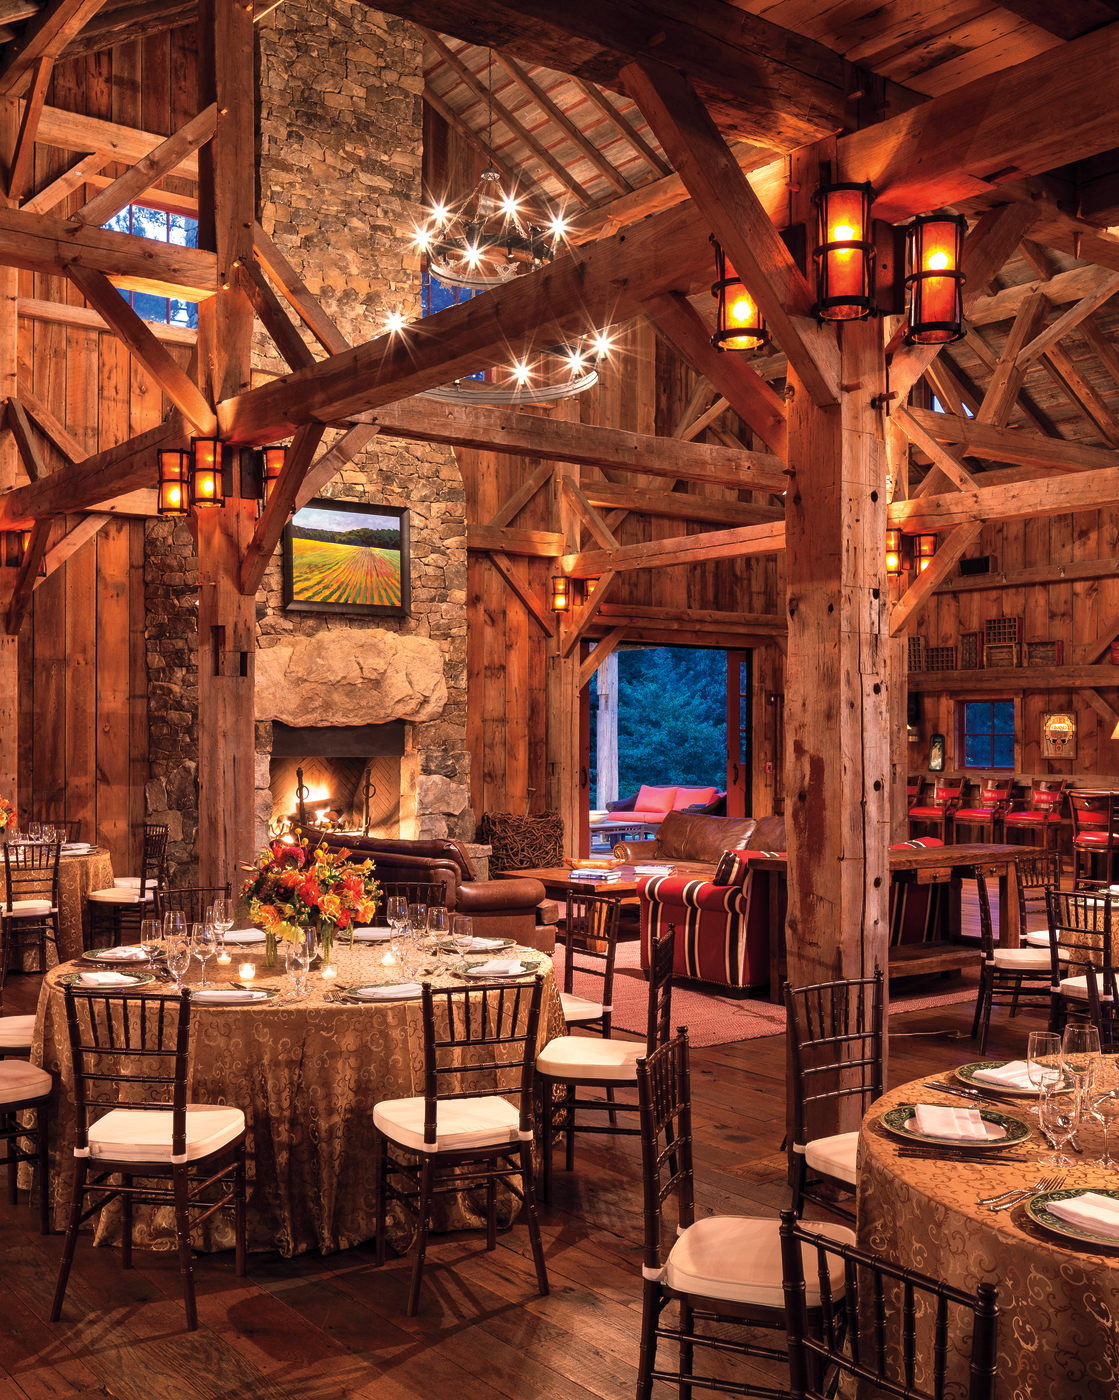 celebrity-wedding-venues-ritz-carlton-lodge-sandy-creek-barn-1015.jpg